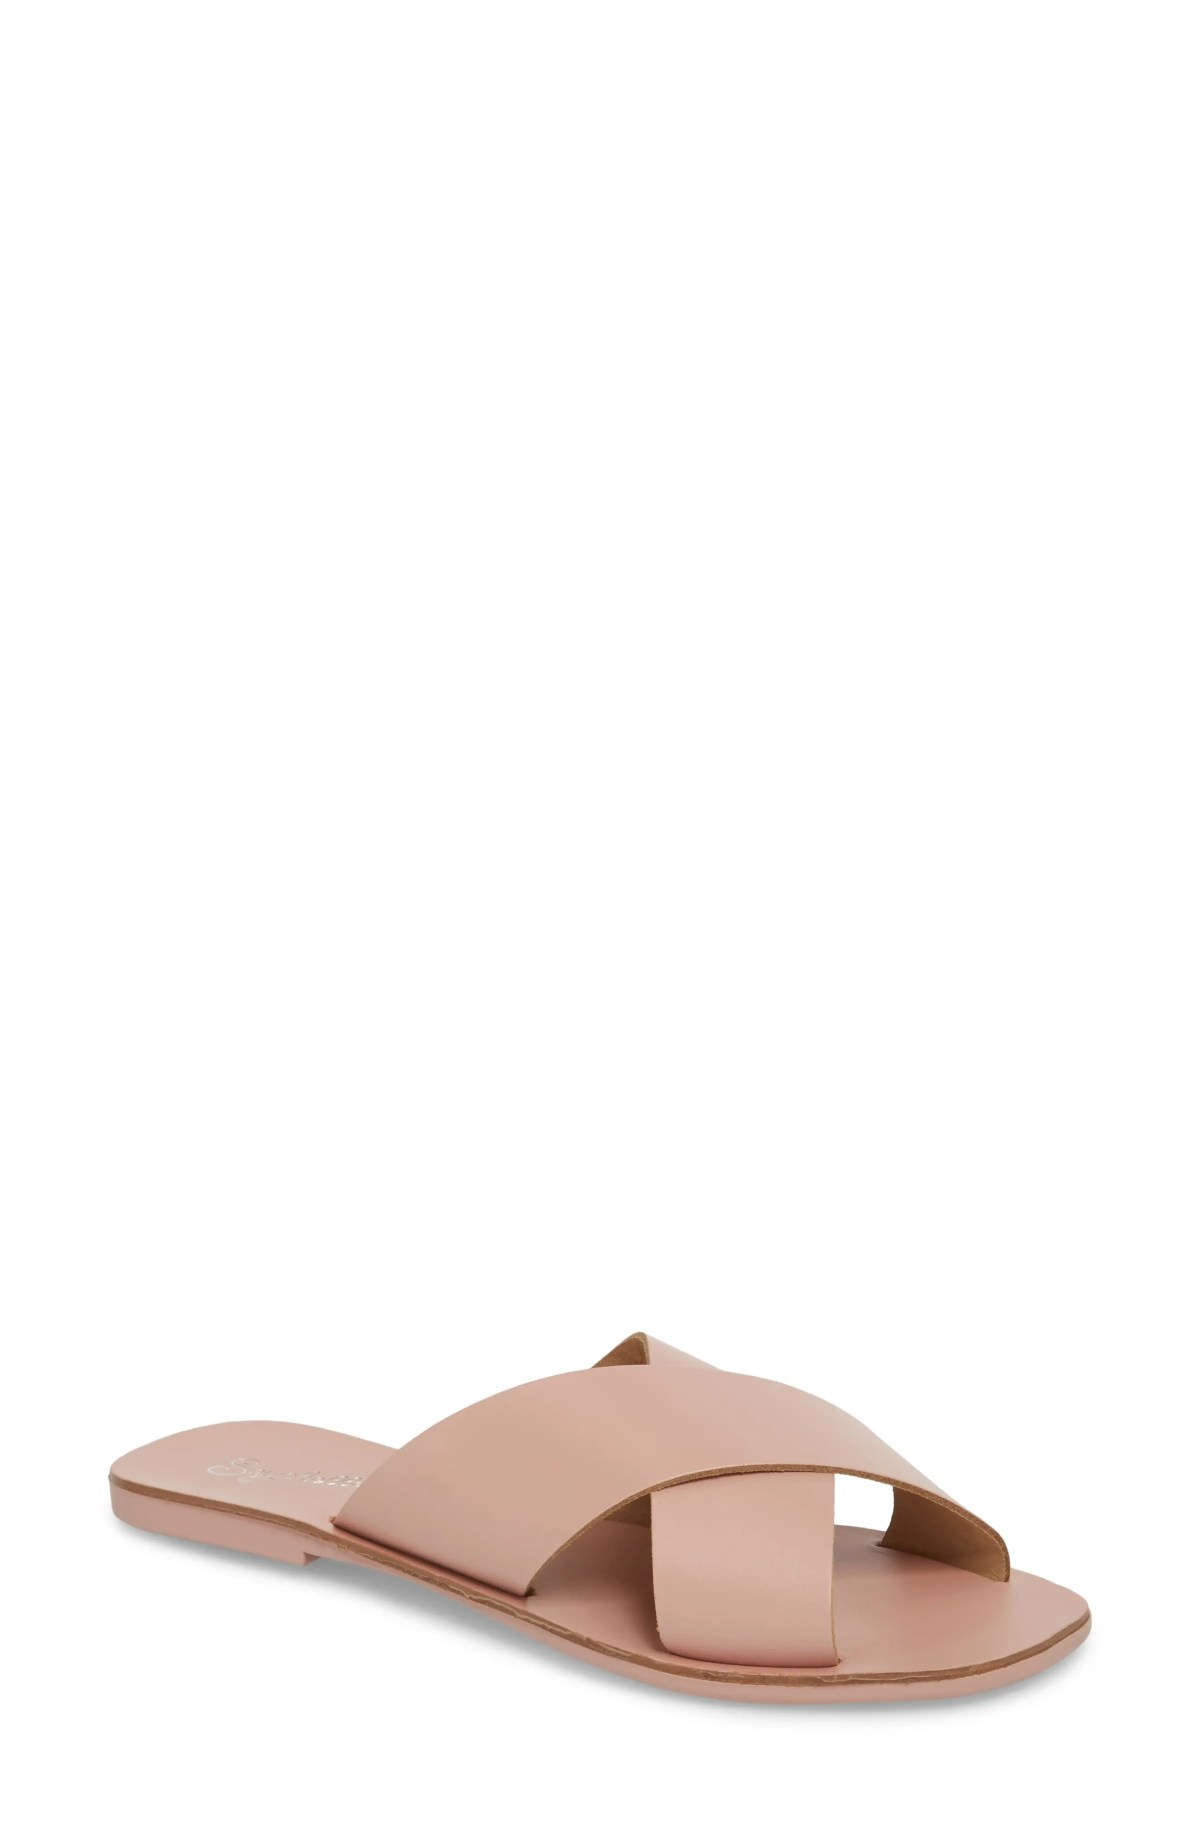 SEYCHELLES Total Relaxation Slide Sandal, Main, color, PINK LEATHER